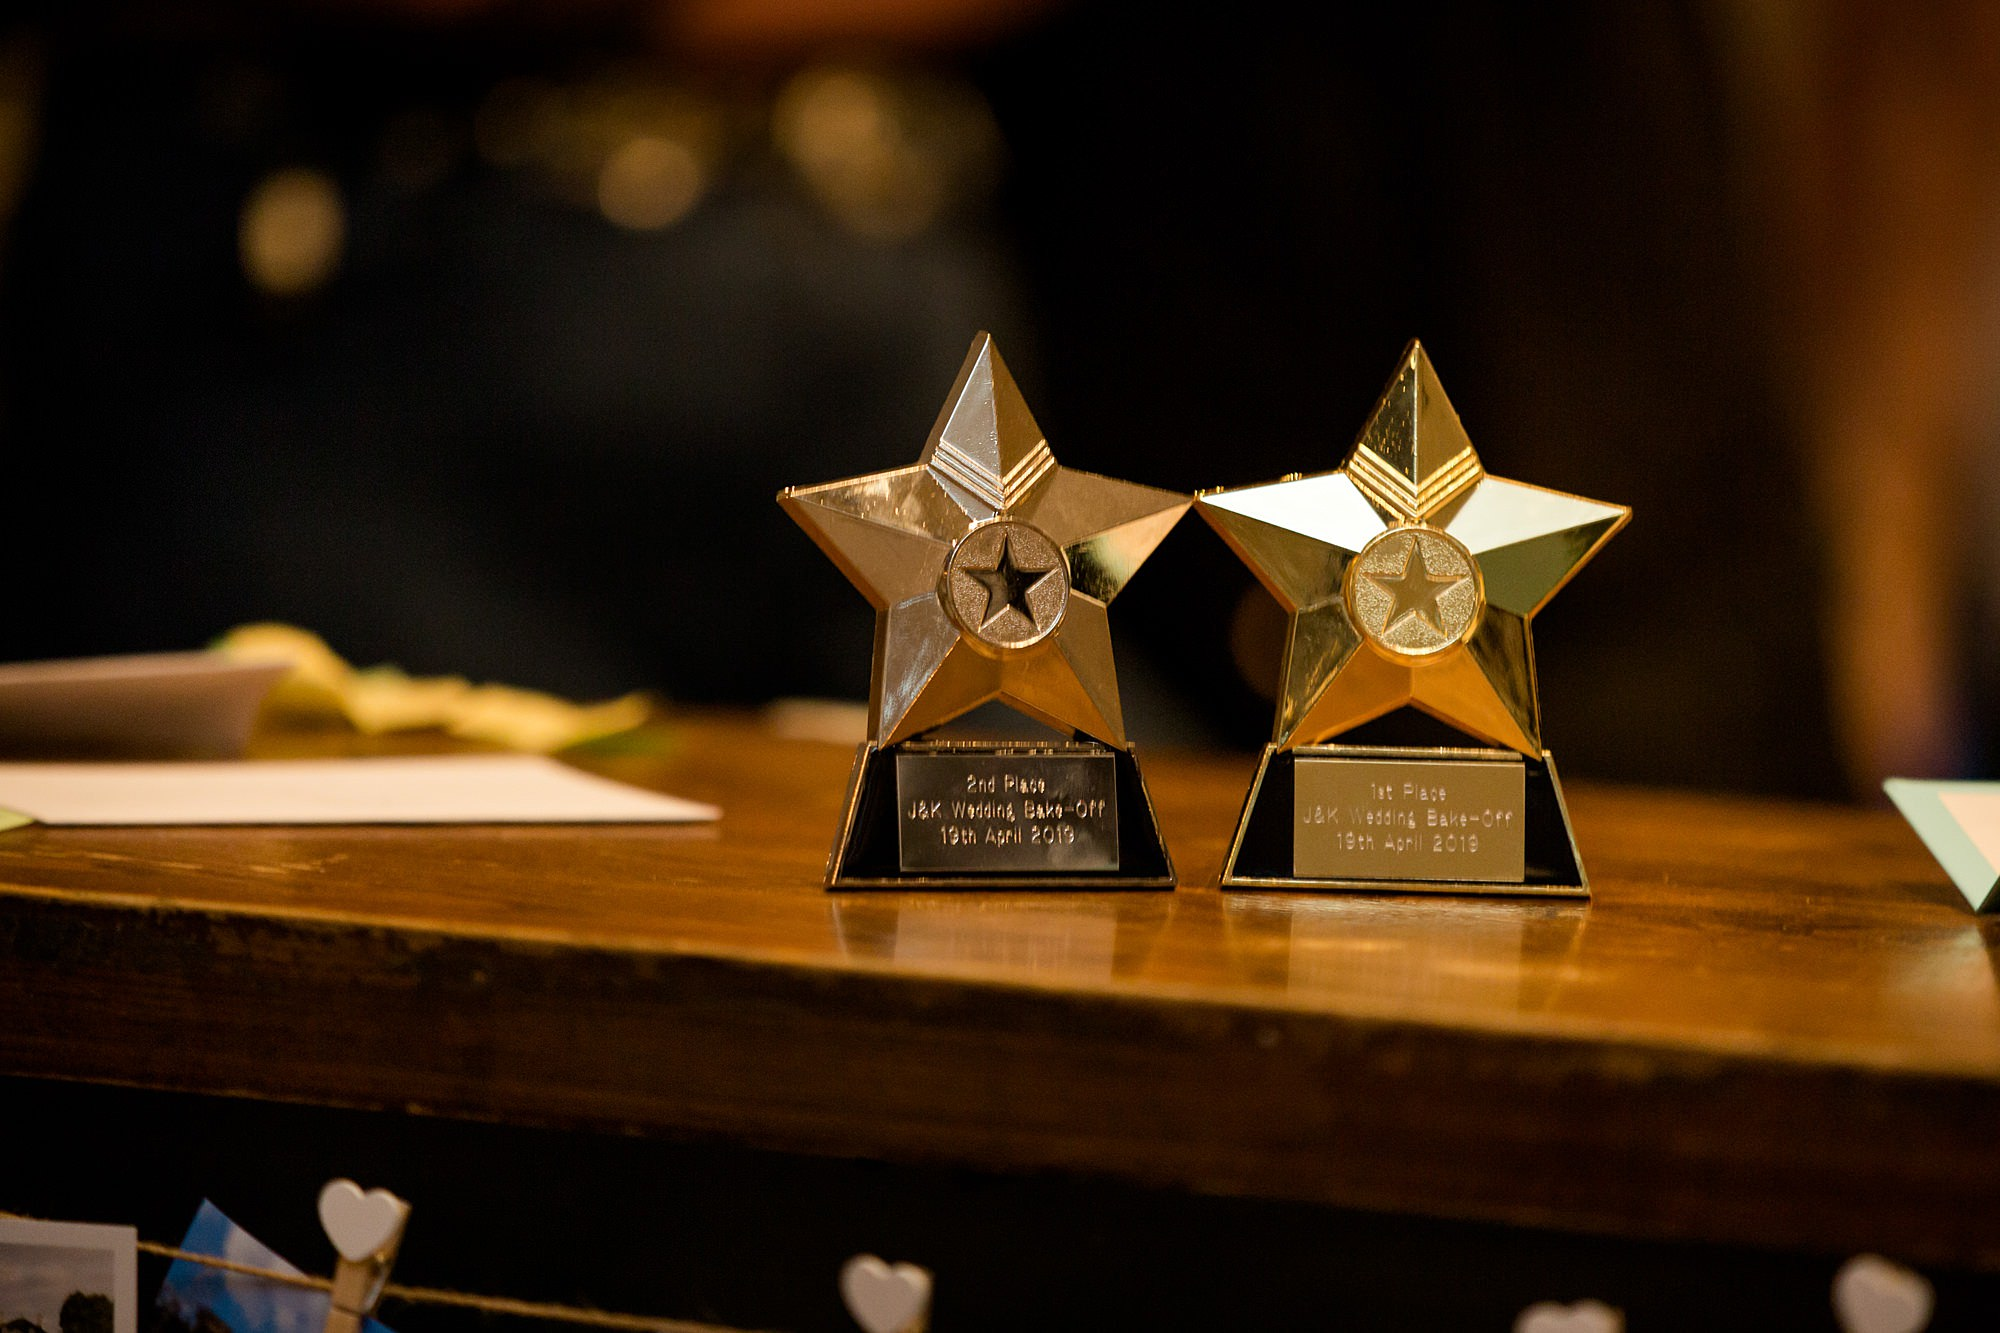 wedding bake off trophies at twickenham pub wedding